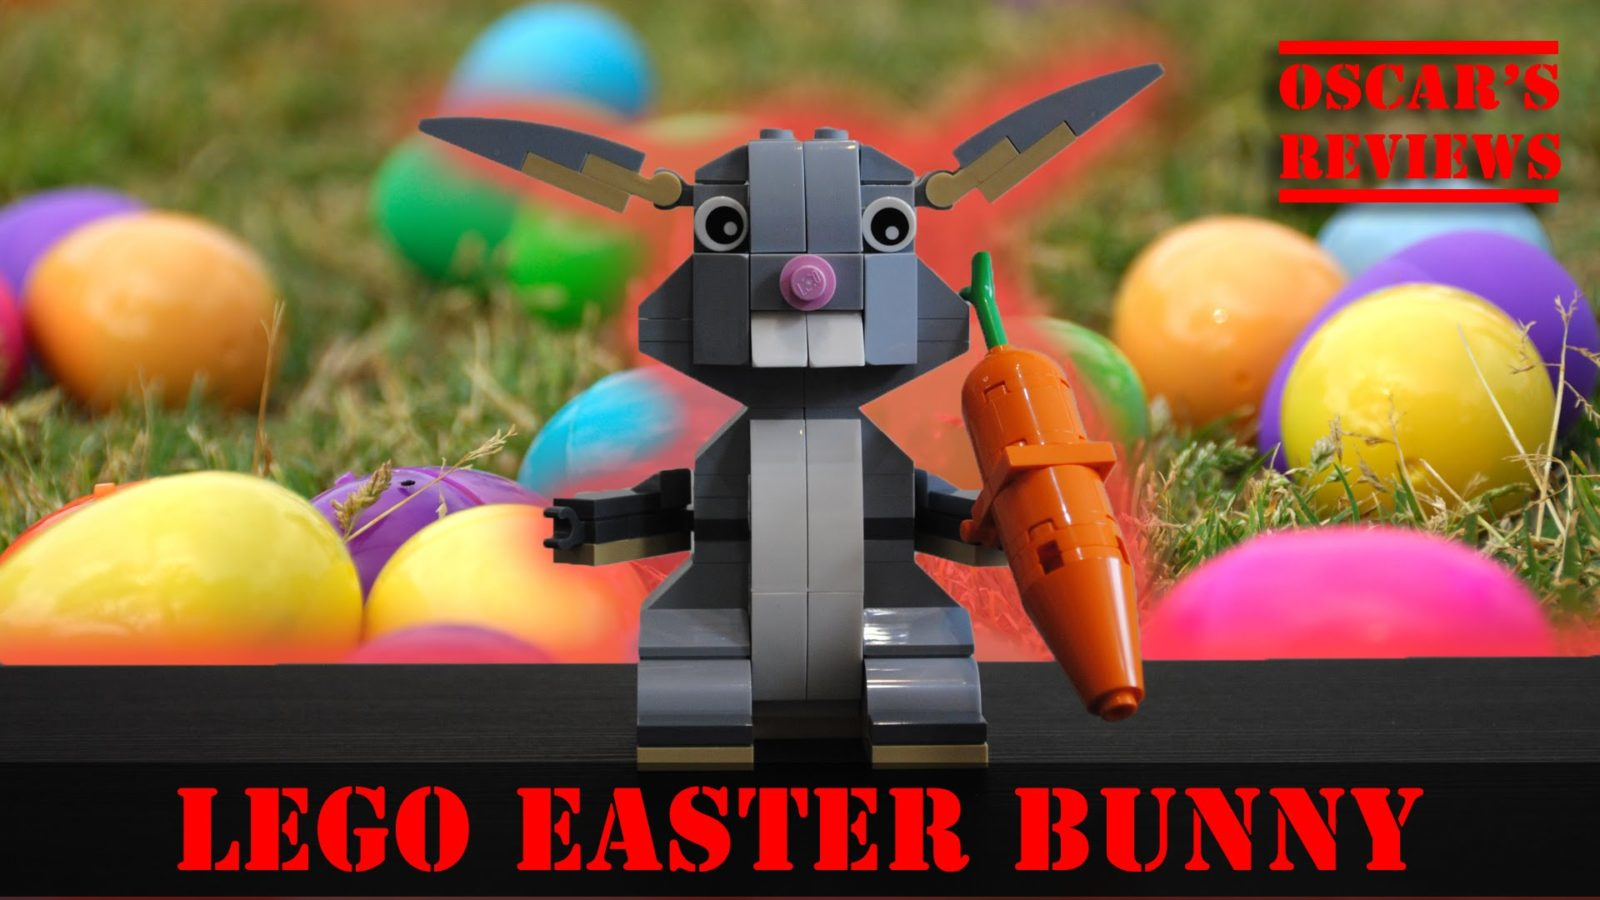 Lego Easter Bunny Review (Set 40086)